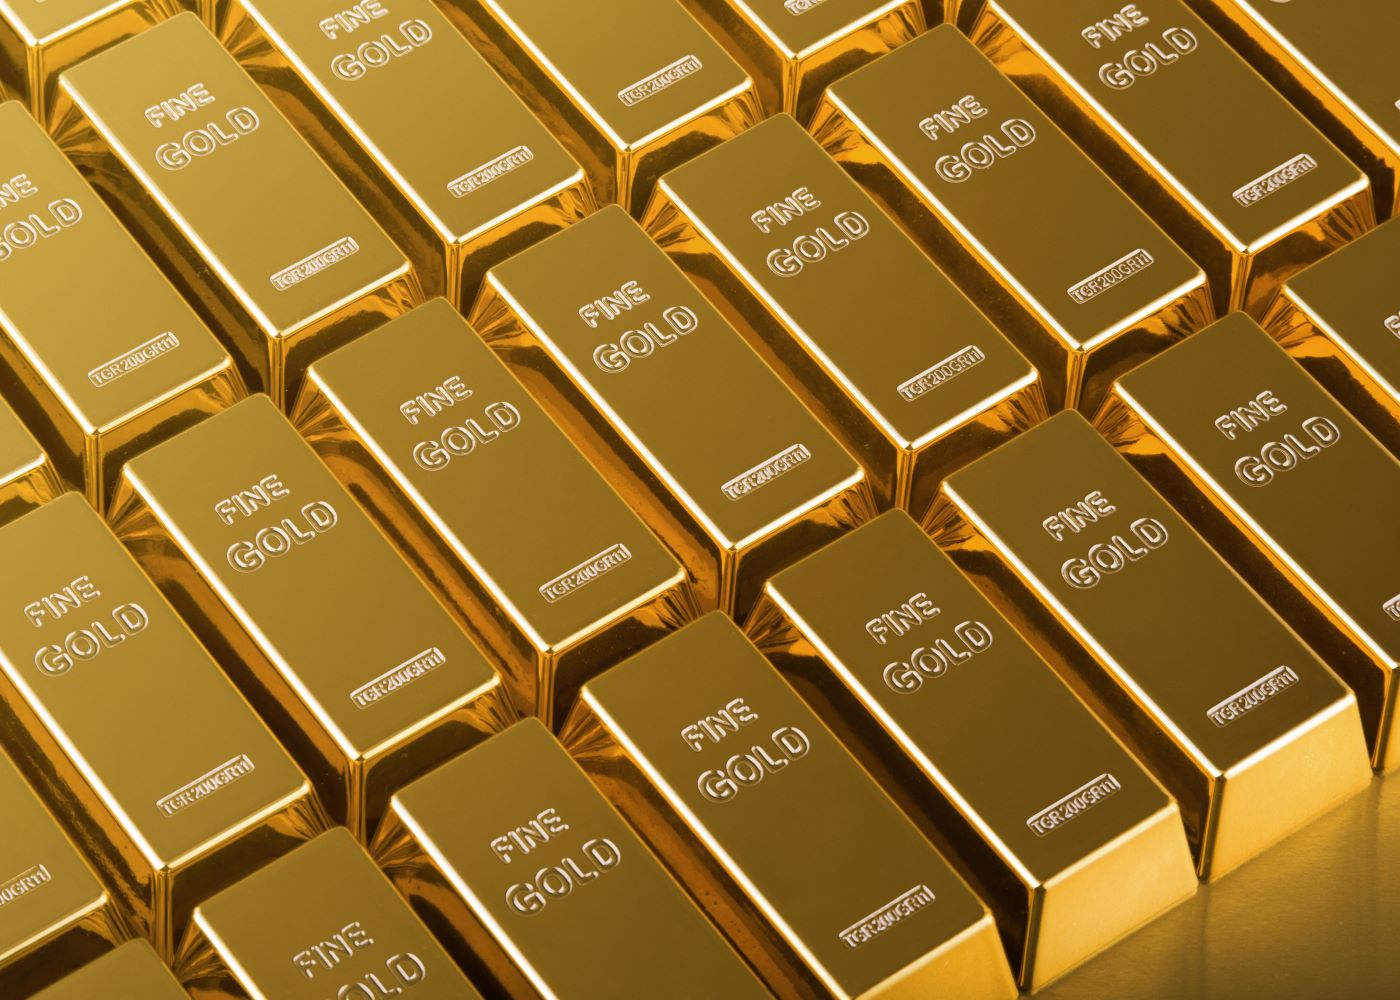 Image of gold bars representing wealth